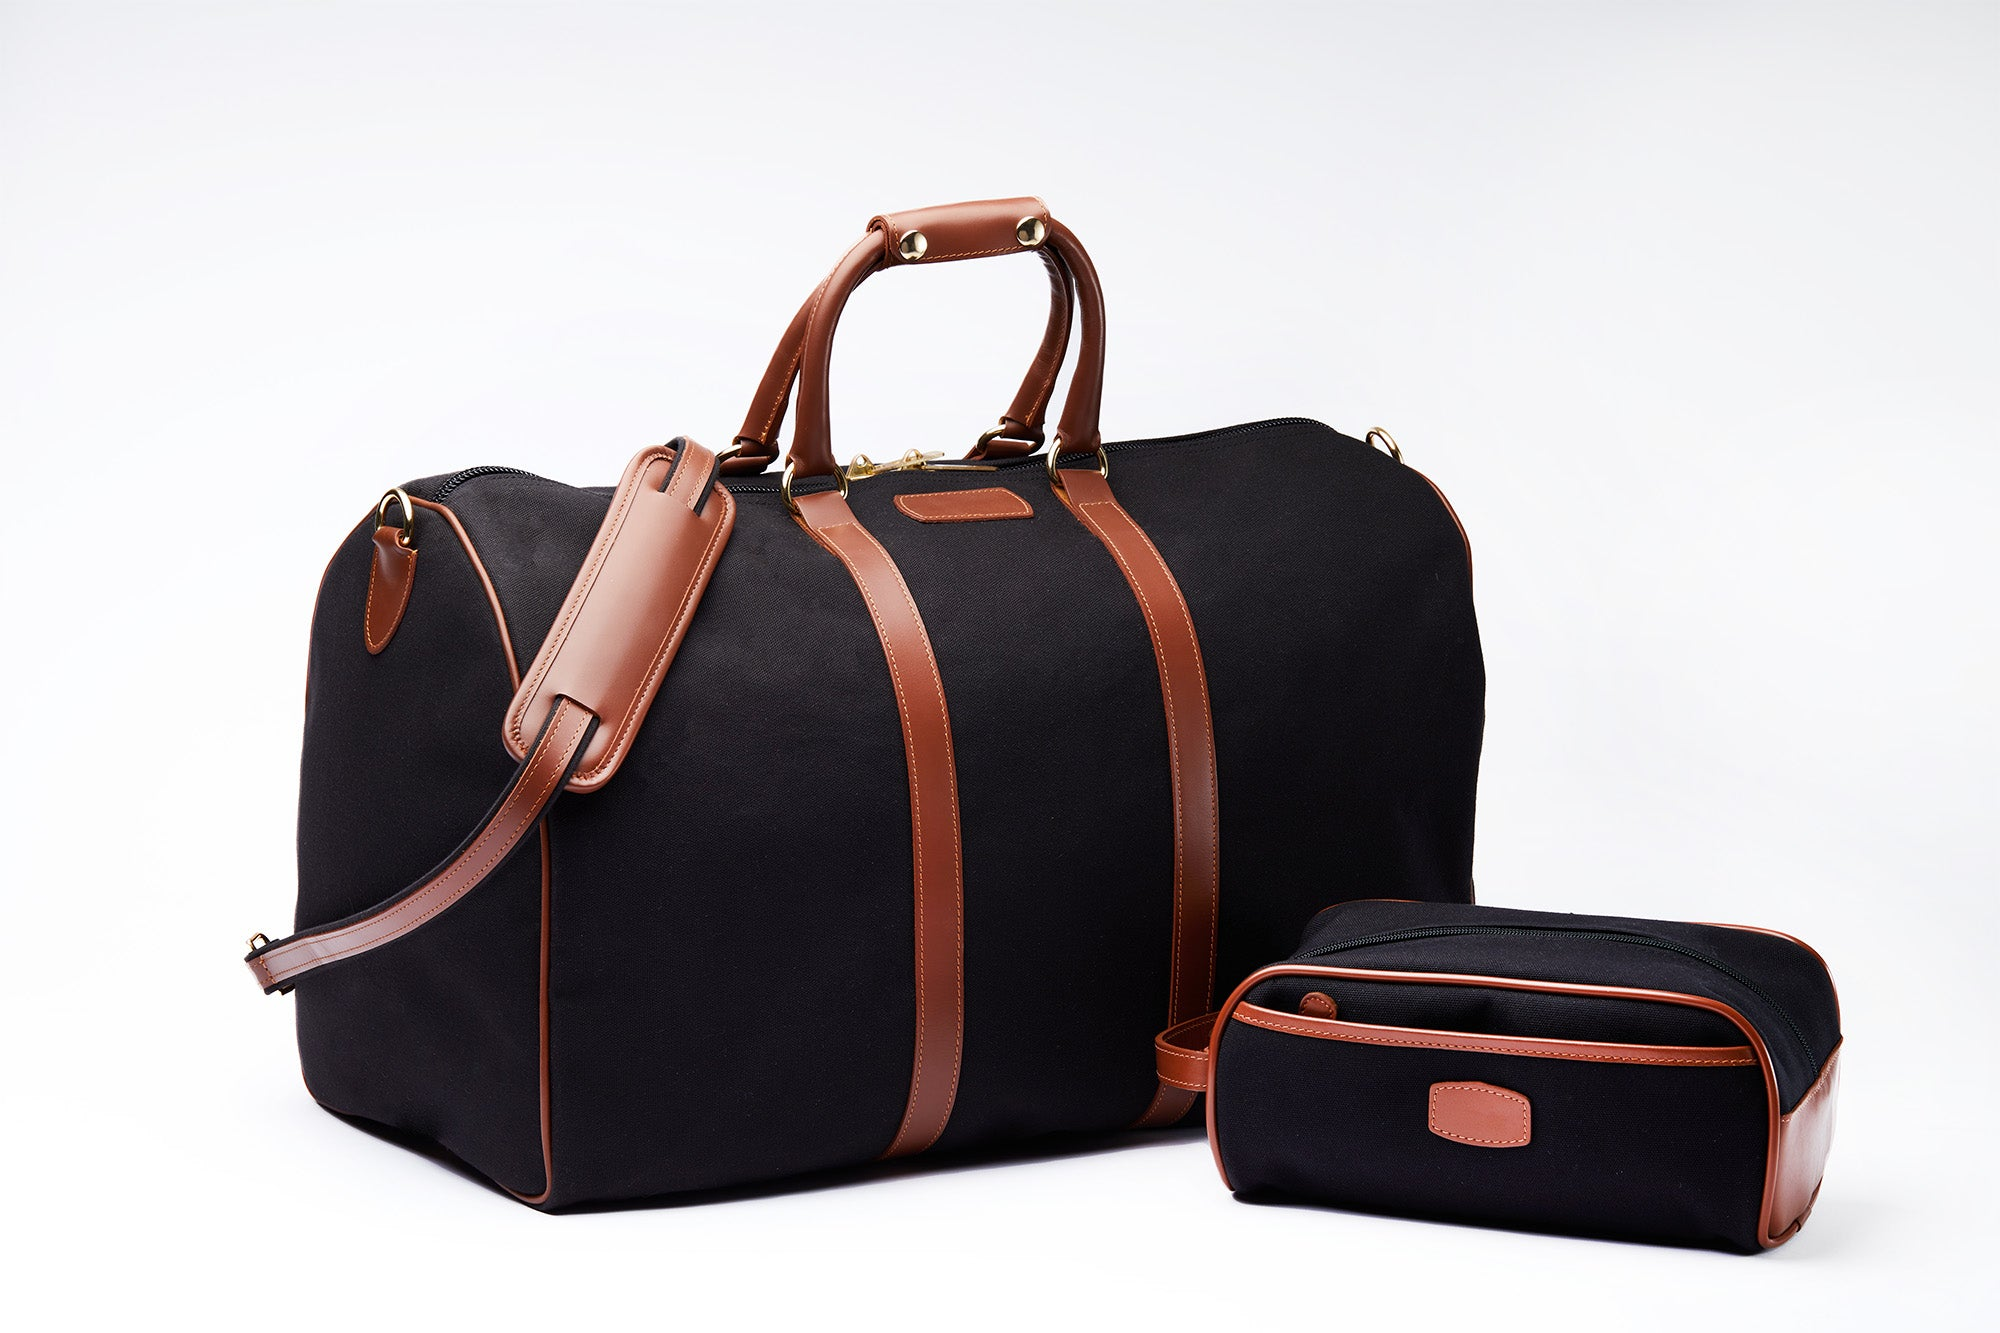 Black canvas duffle and shave kit with brown leather accents